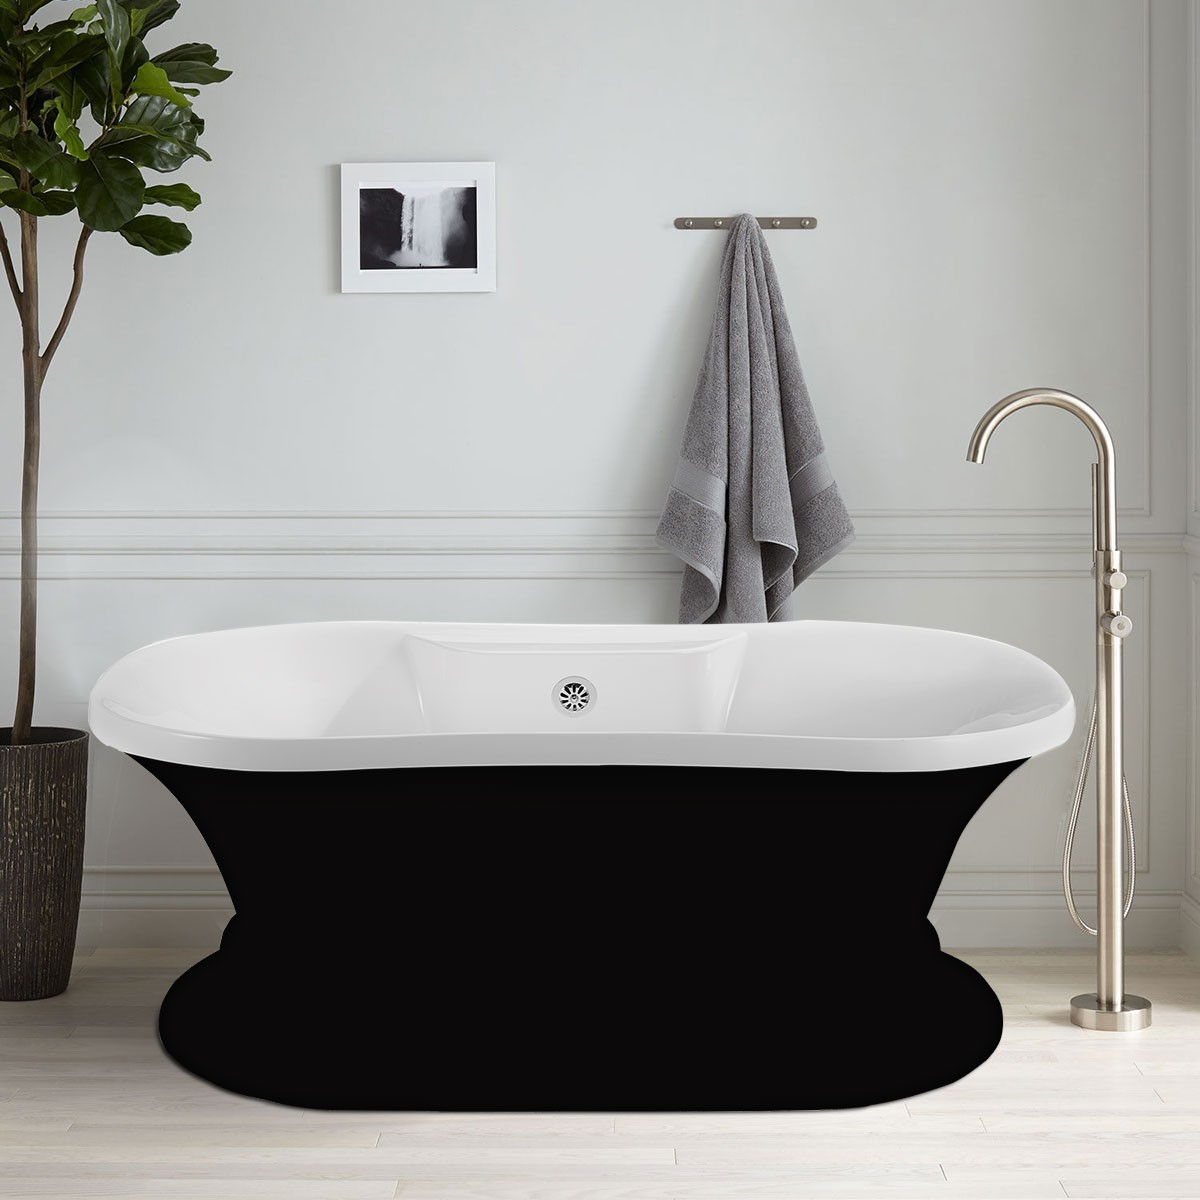 60 In Freestanding Bathtub Acrylic Black Dk A51601